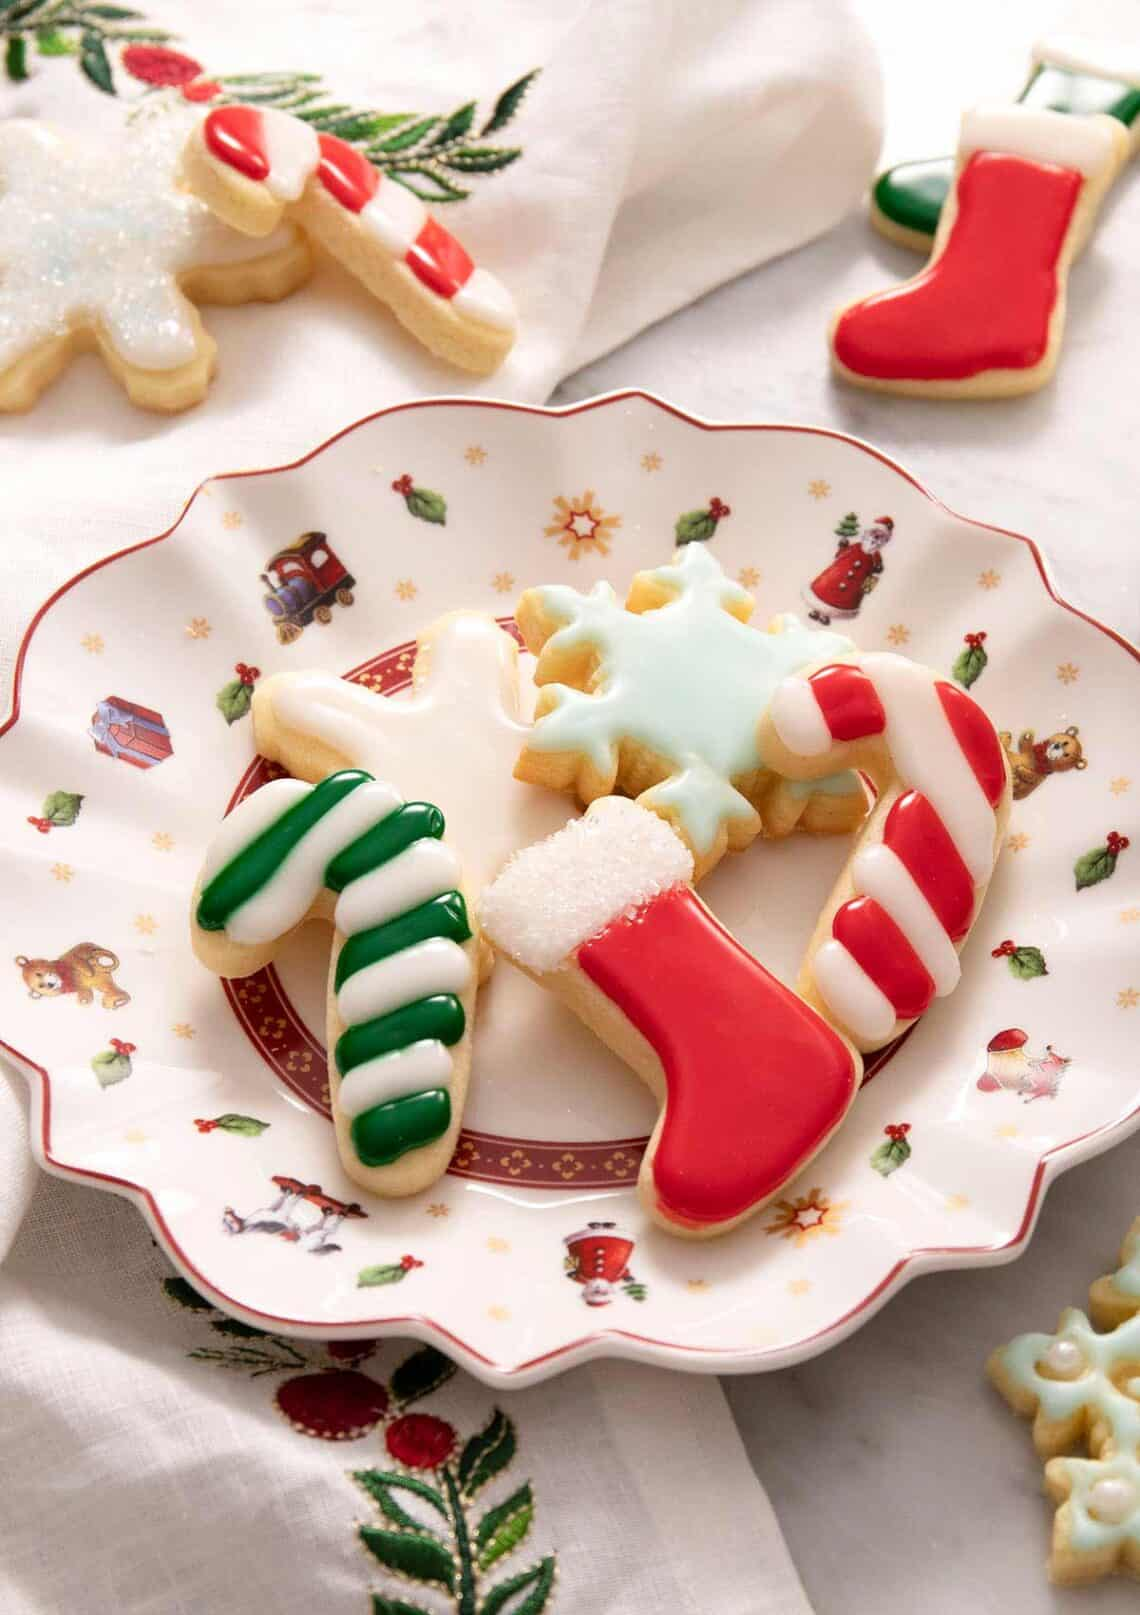 A side shot of Christmas sugar cookies with icing on a plate